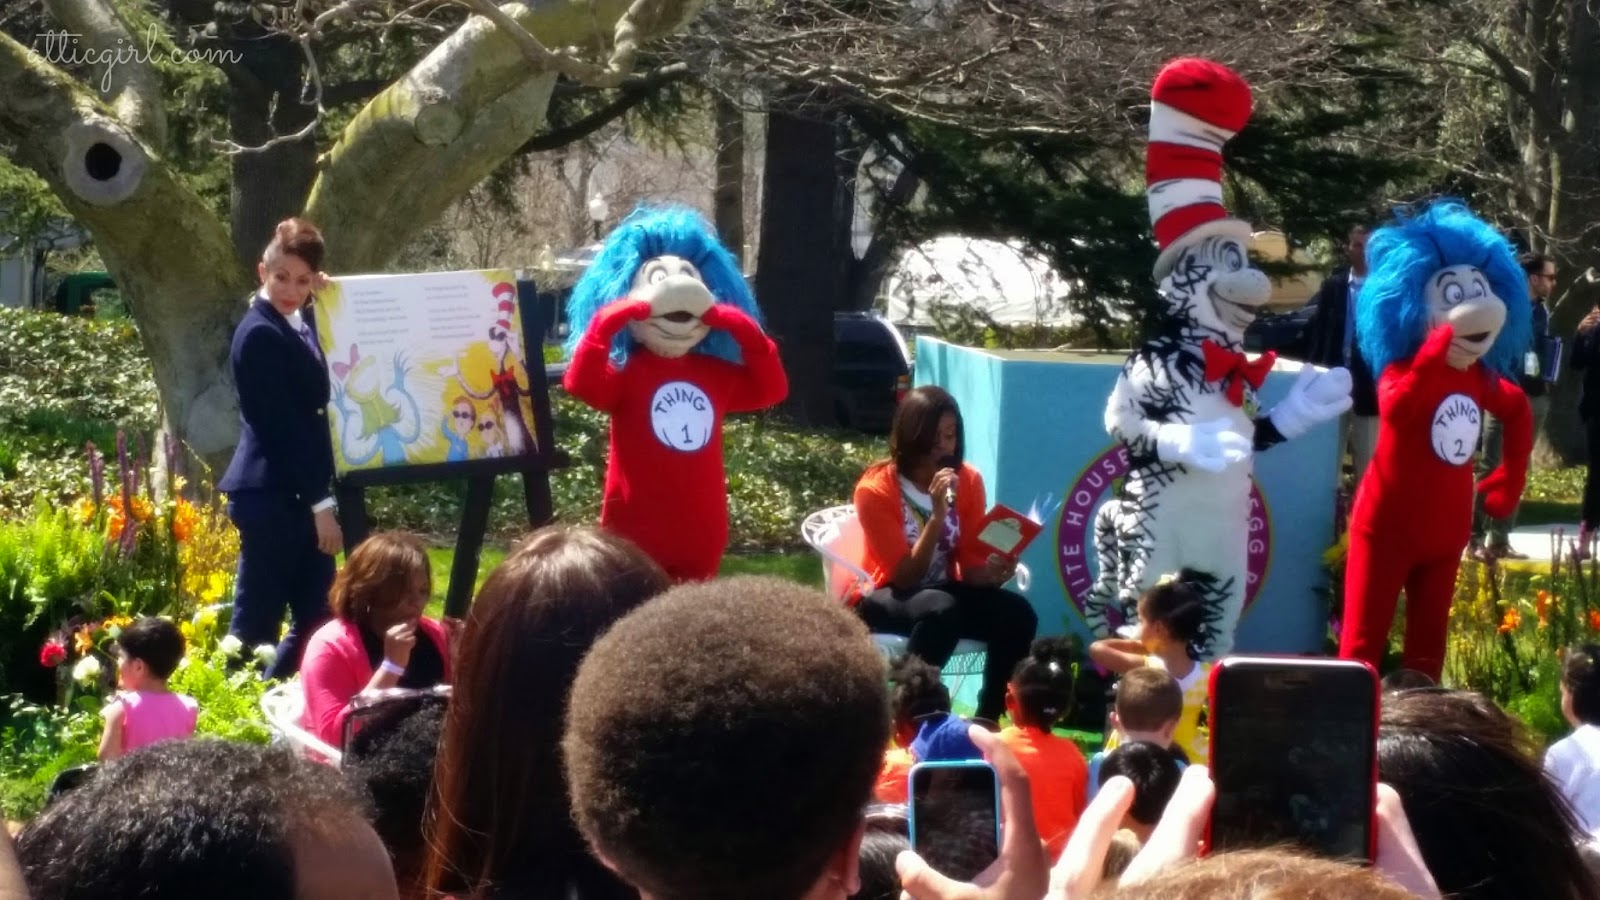 FLOTUS, The Cat & The Hat, Genevieve Goings, Thing 1 and Thing 2, Dr. Seuss, 2015 White House Easter Egg Roll